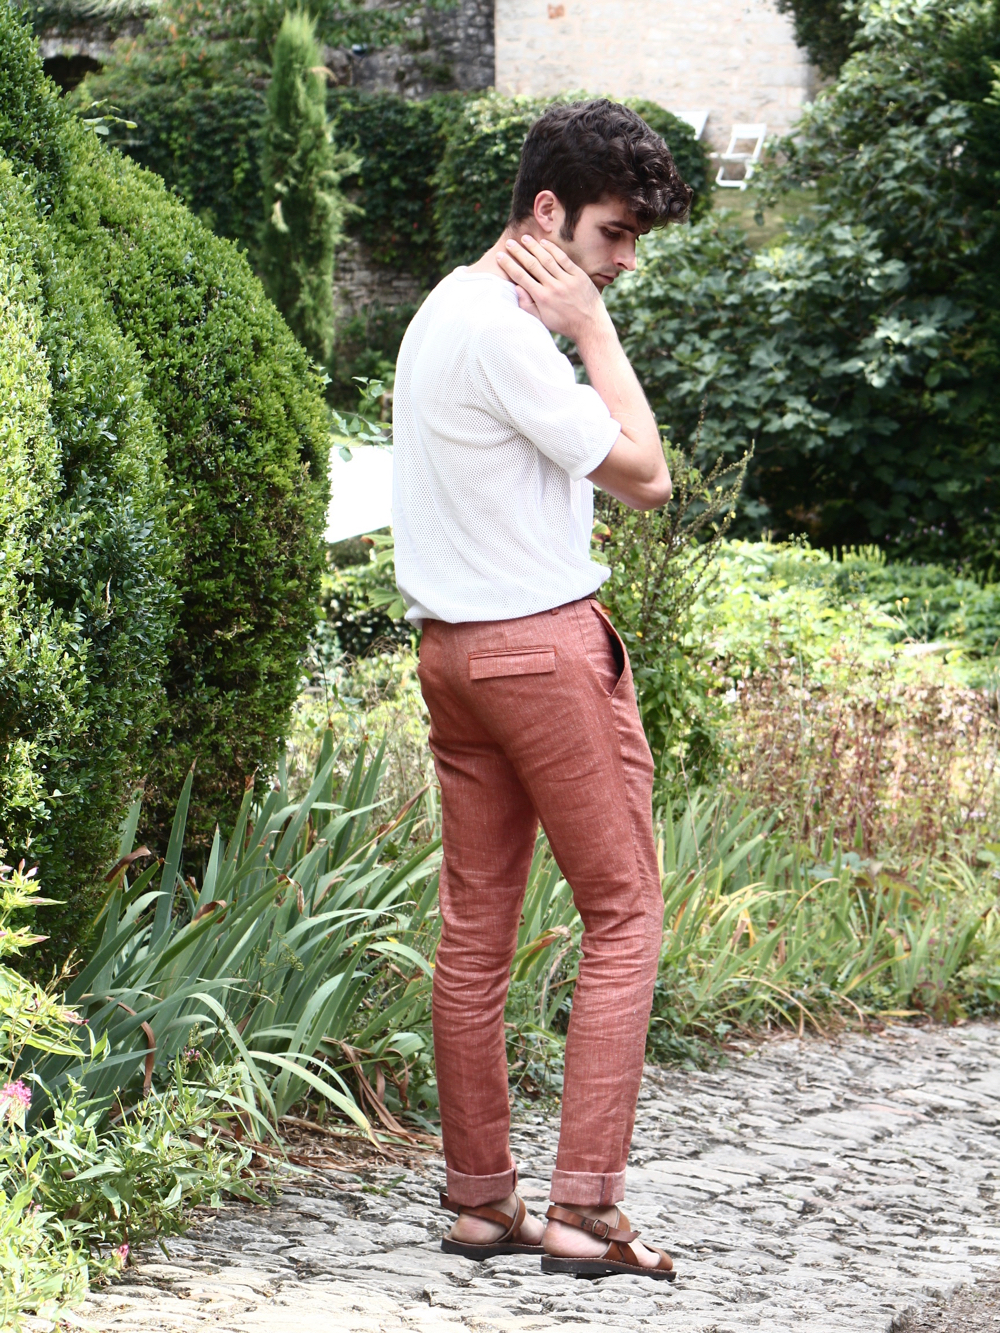 blog-mode-homme-masculine-look-tenue-style-preppy-pantalon-en-lon-tshirt-transparent-sexy-sandales-en-cuir-spartiate